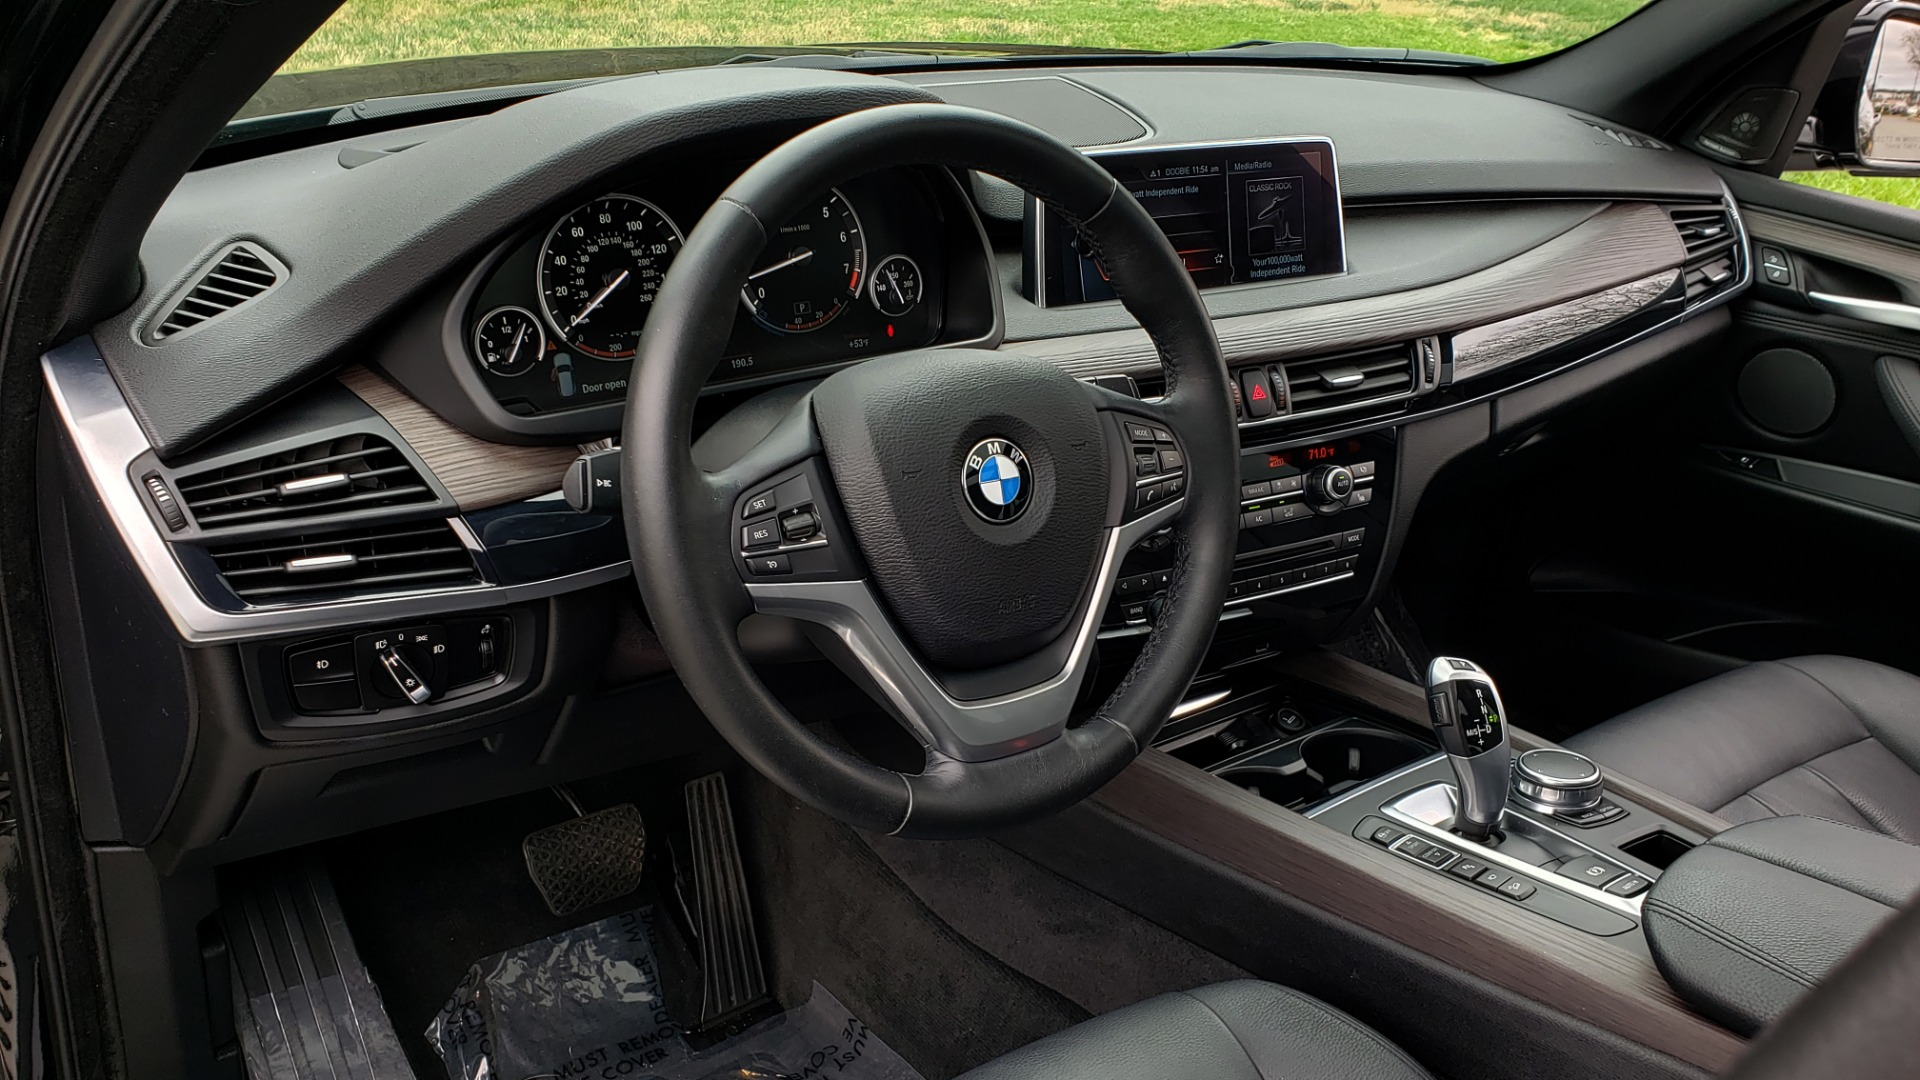 Used 2017 BMW X5 XDRIVE35I / PREM LUX PKG / DRVR ASST / CLD WTHR / APPLE CAR PLAY for sale Sold at Formula Imports in Charlotte NC 28227 38